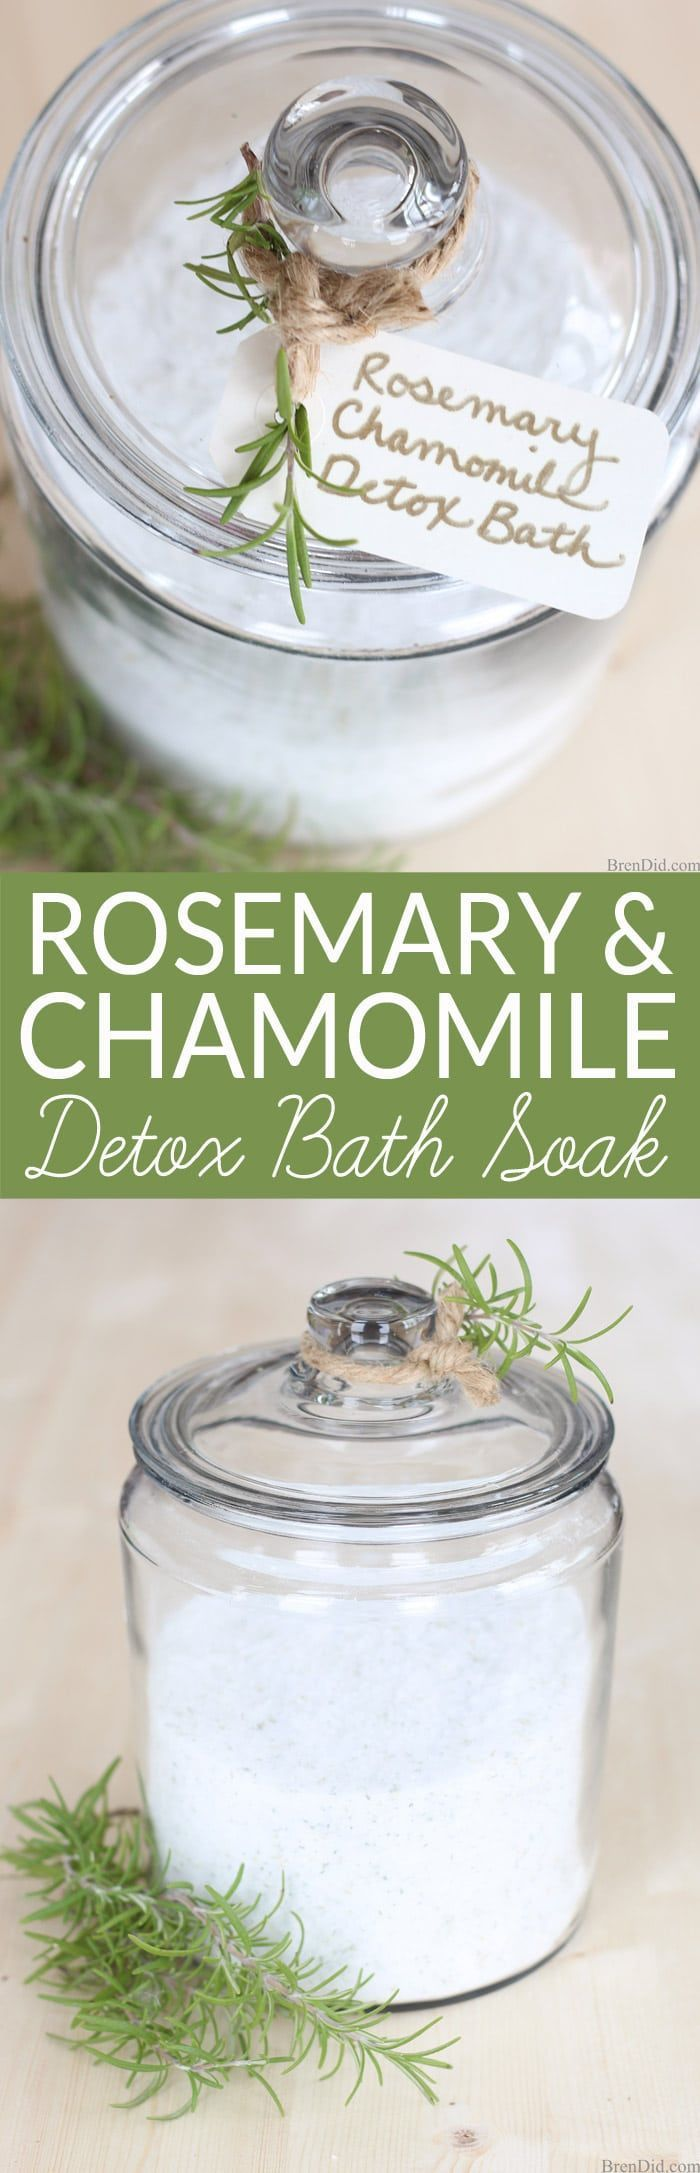 A hot bath is a relaxing way to unwind and end the day. It can be especially beneficially when you add detox bath salts that help to remove toxins, promote peaceful sleep and aid in weight loss. This all-natural Rosemary Chamomile Detox Bath Soak recipe uses simple ingredients to prepare an inexpensive but luxurious detox bath.  via @brendidblog